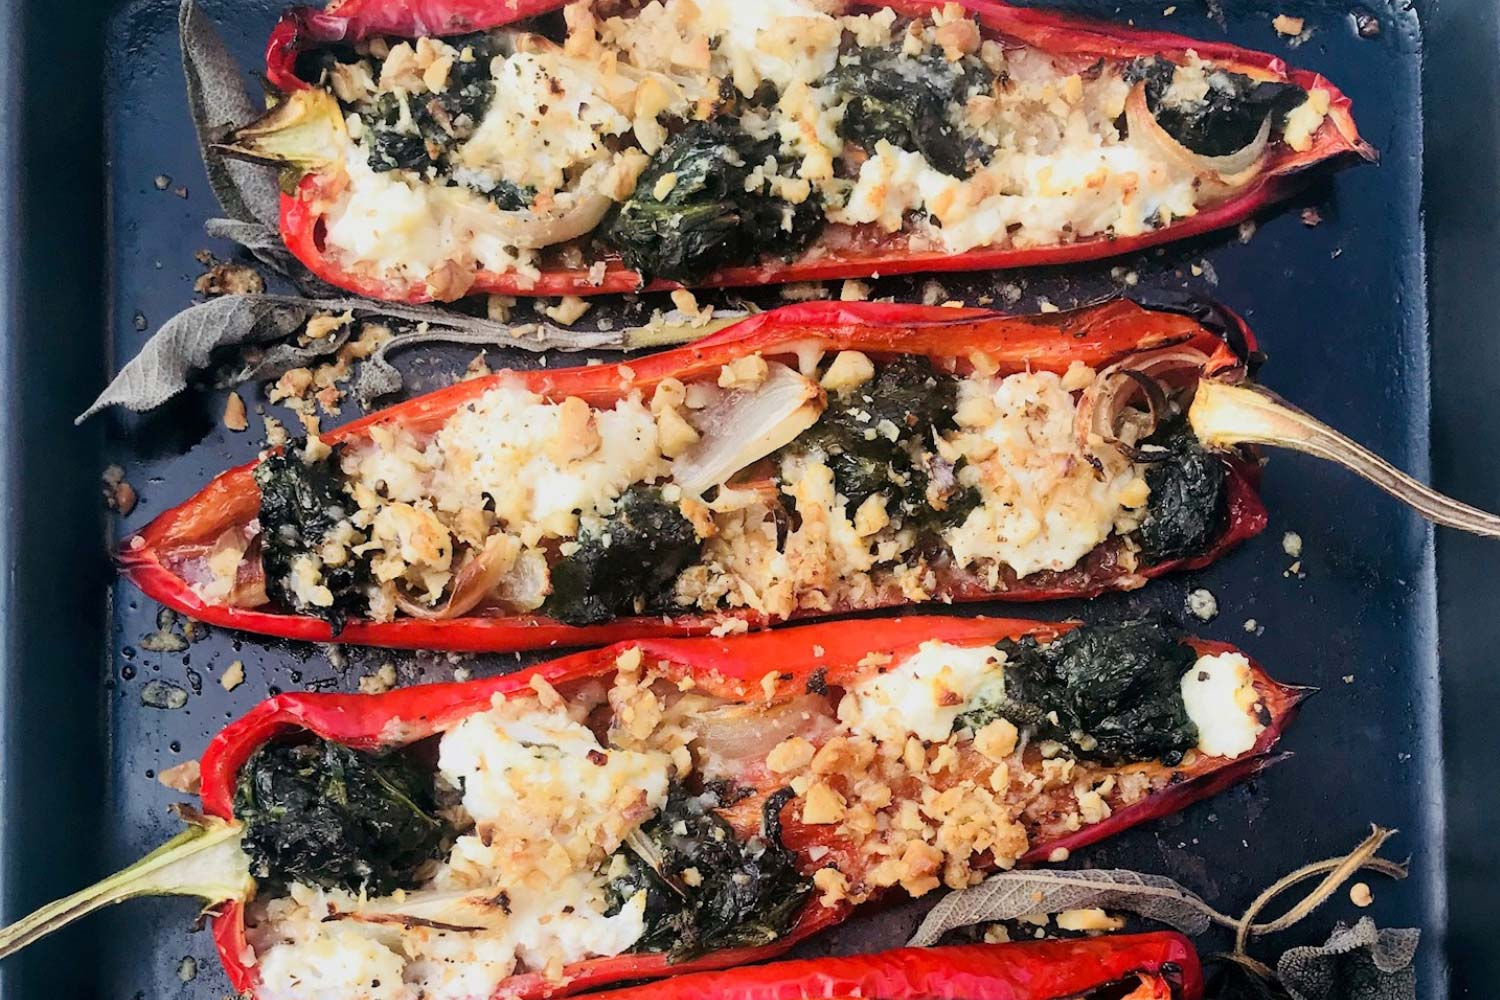 Pomora Romana Peppers with garlic oil, spinach and ricotta